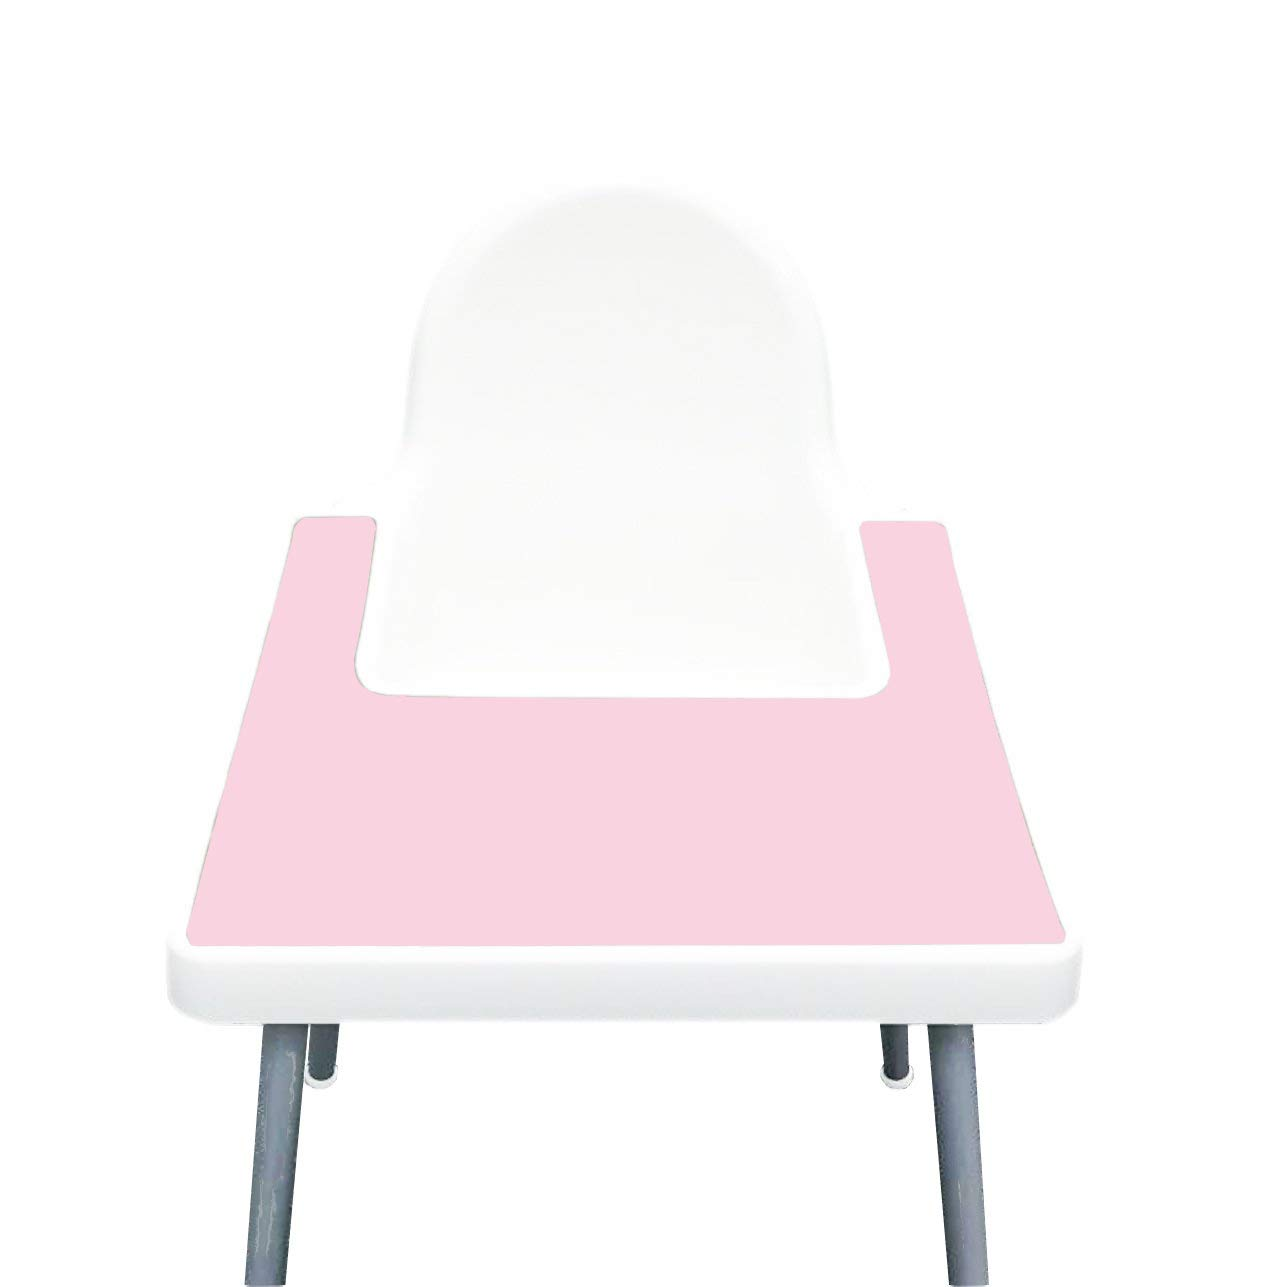 IKEA High Chair Placemat for Antilop Baby High Chair – Silicone Placemats for Baby and Toddler Finger Food Dropping – BPA Free, Dishwasher Safe – Non Slip Food Mat + More Colors (Ballerina Pink)